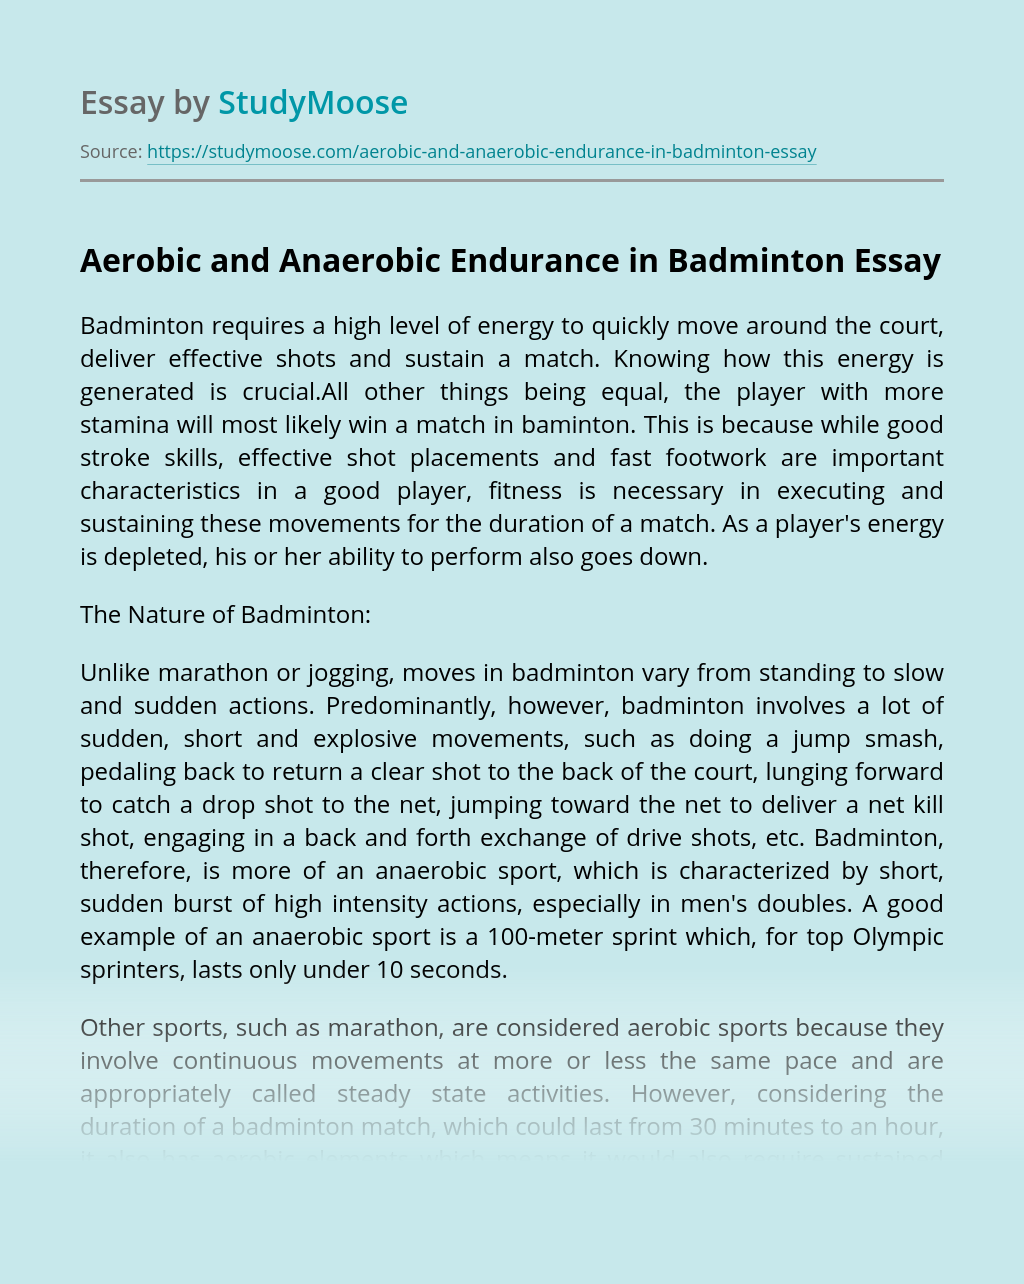 Aerobic and Anaerobic Endurance in Badminton